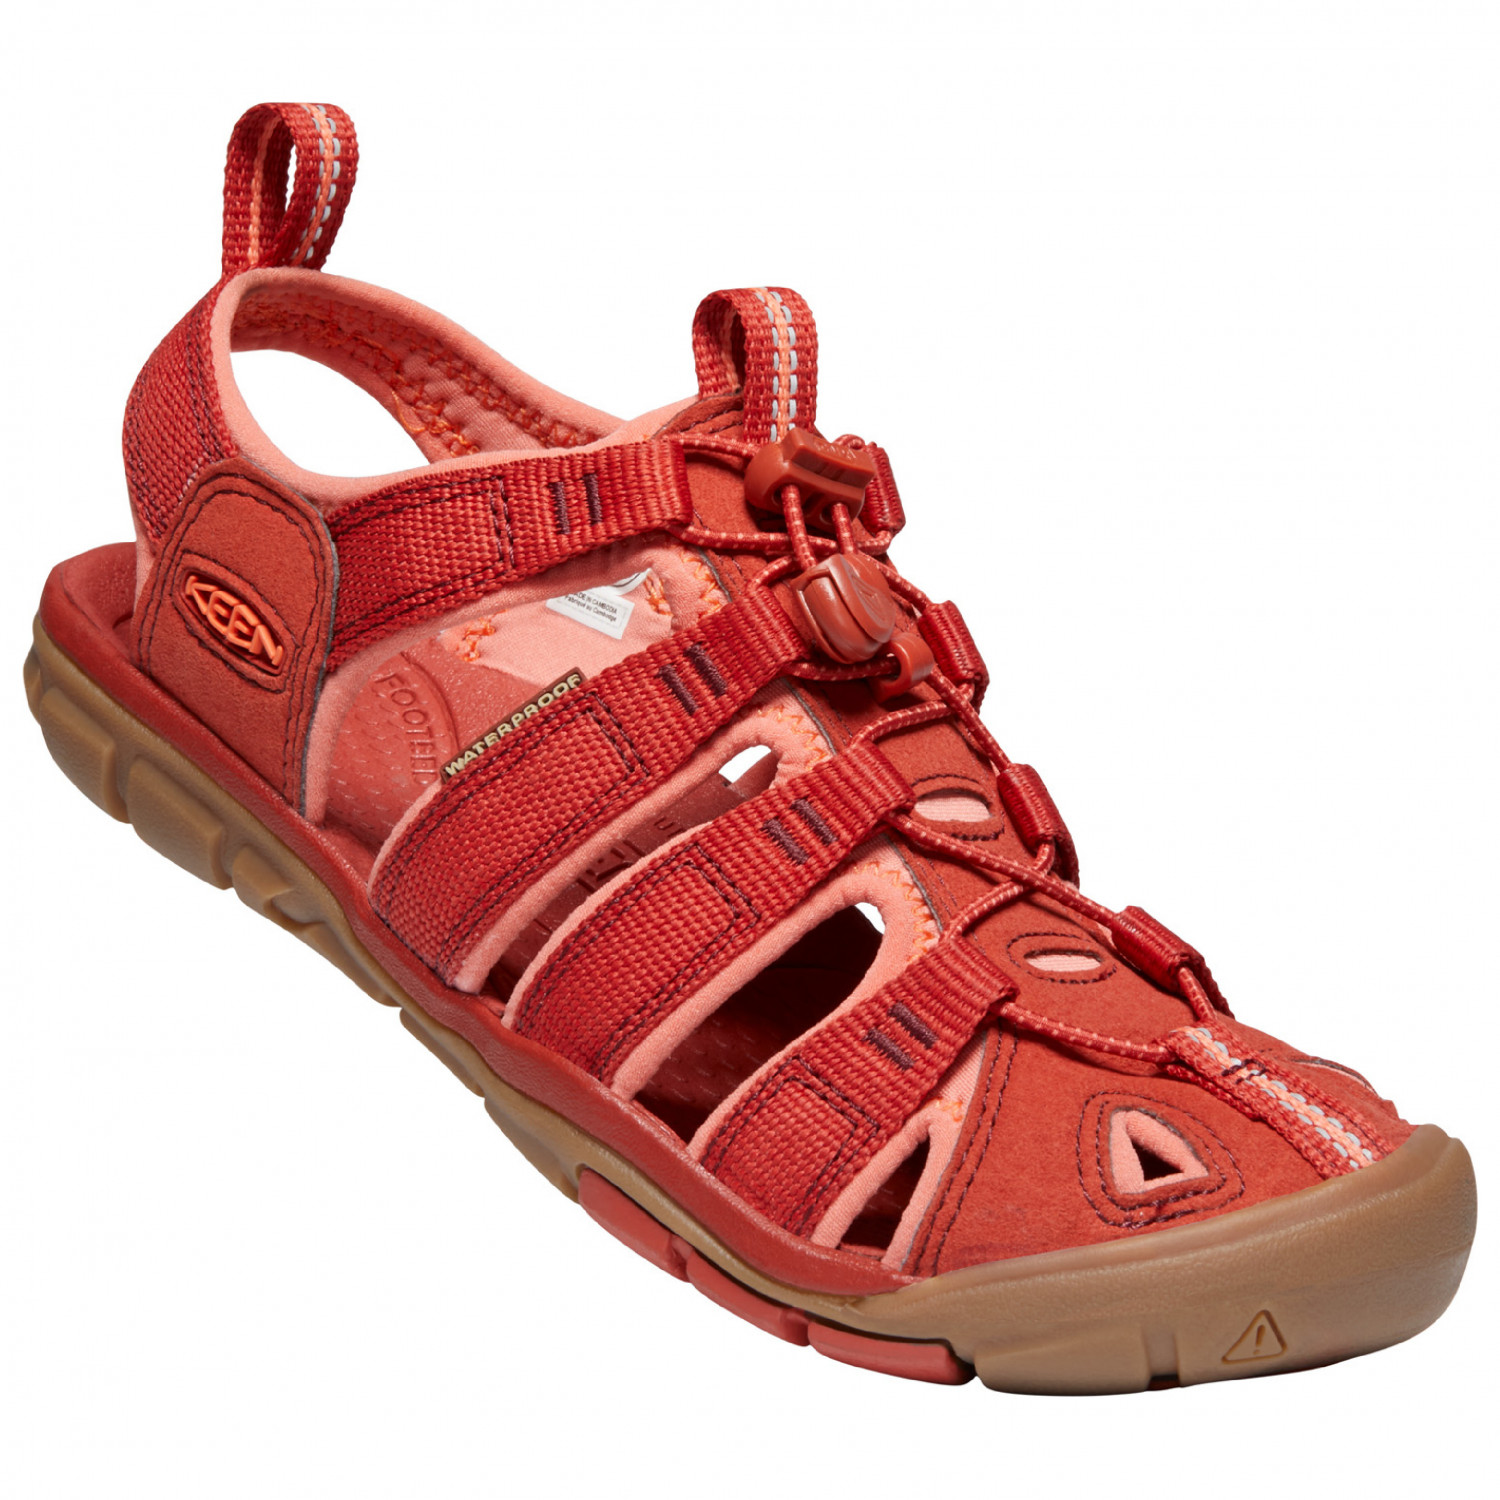 Keen Womens Clearwater Cnx Closed Toe Sandals